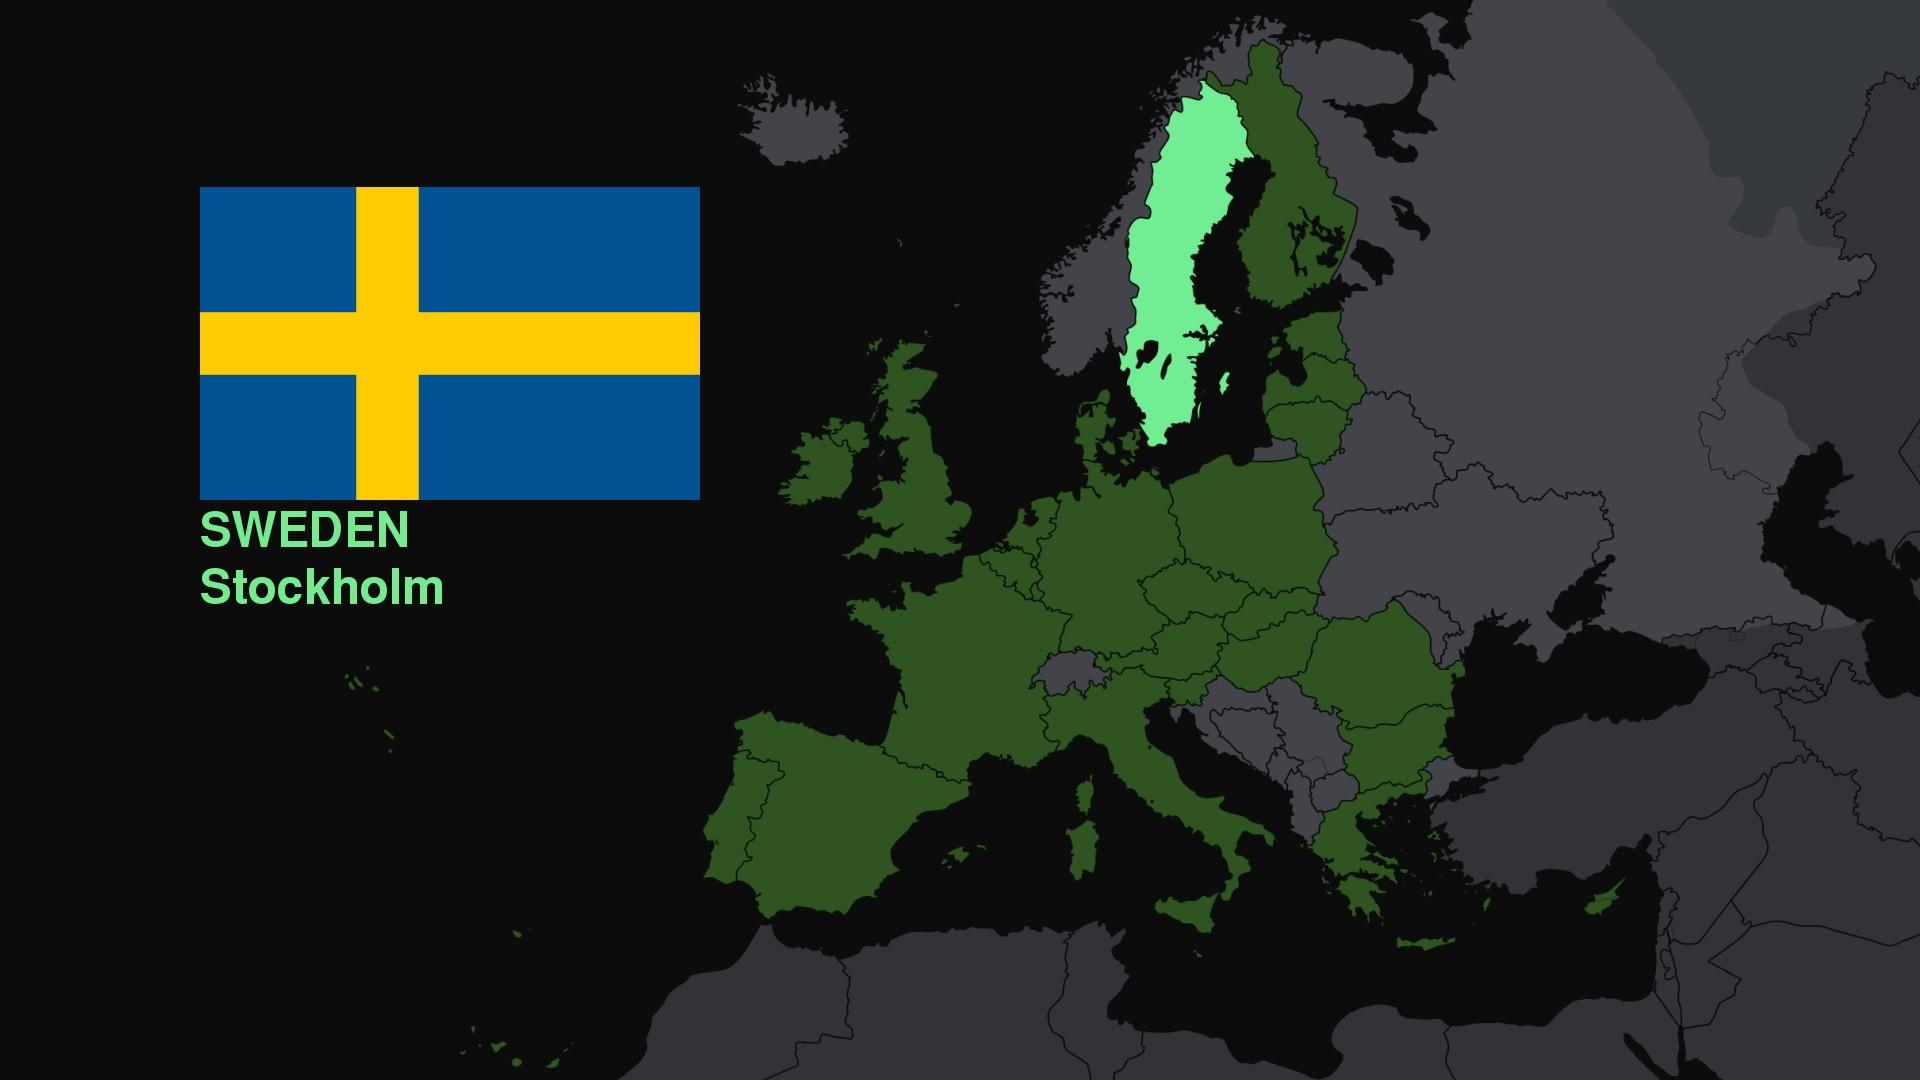 1920x1080 flag sweden europe map wallpapers and backgrounds JPG 135 kB